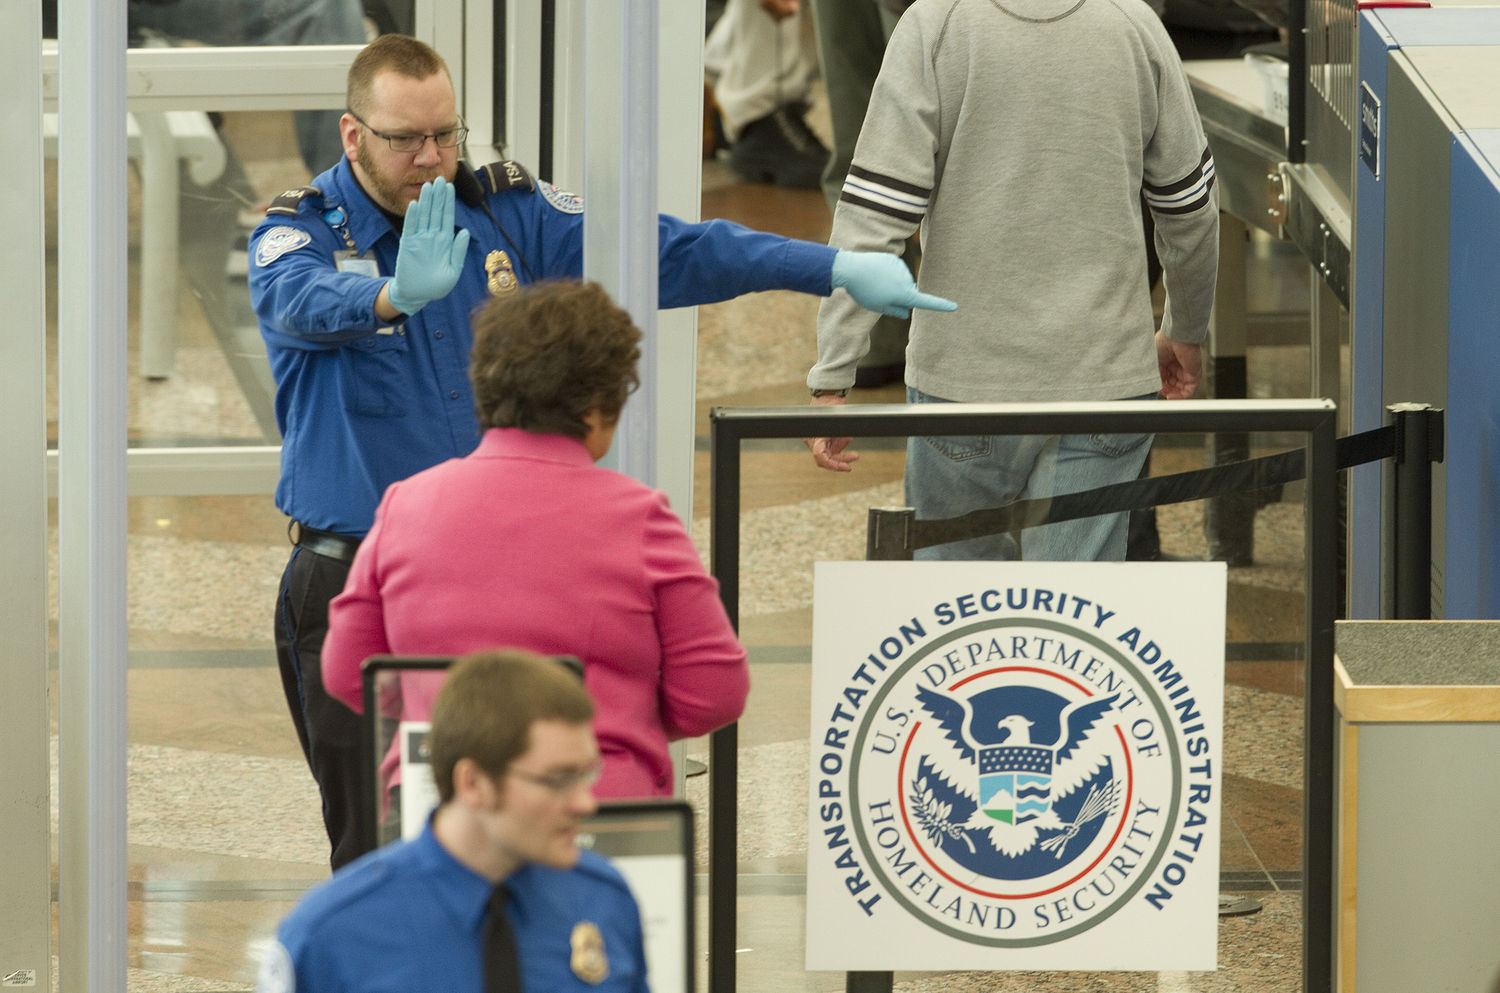 TSA Conducts Full-Body Scans and Pat Downs at Denver International Airport